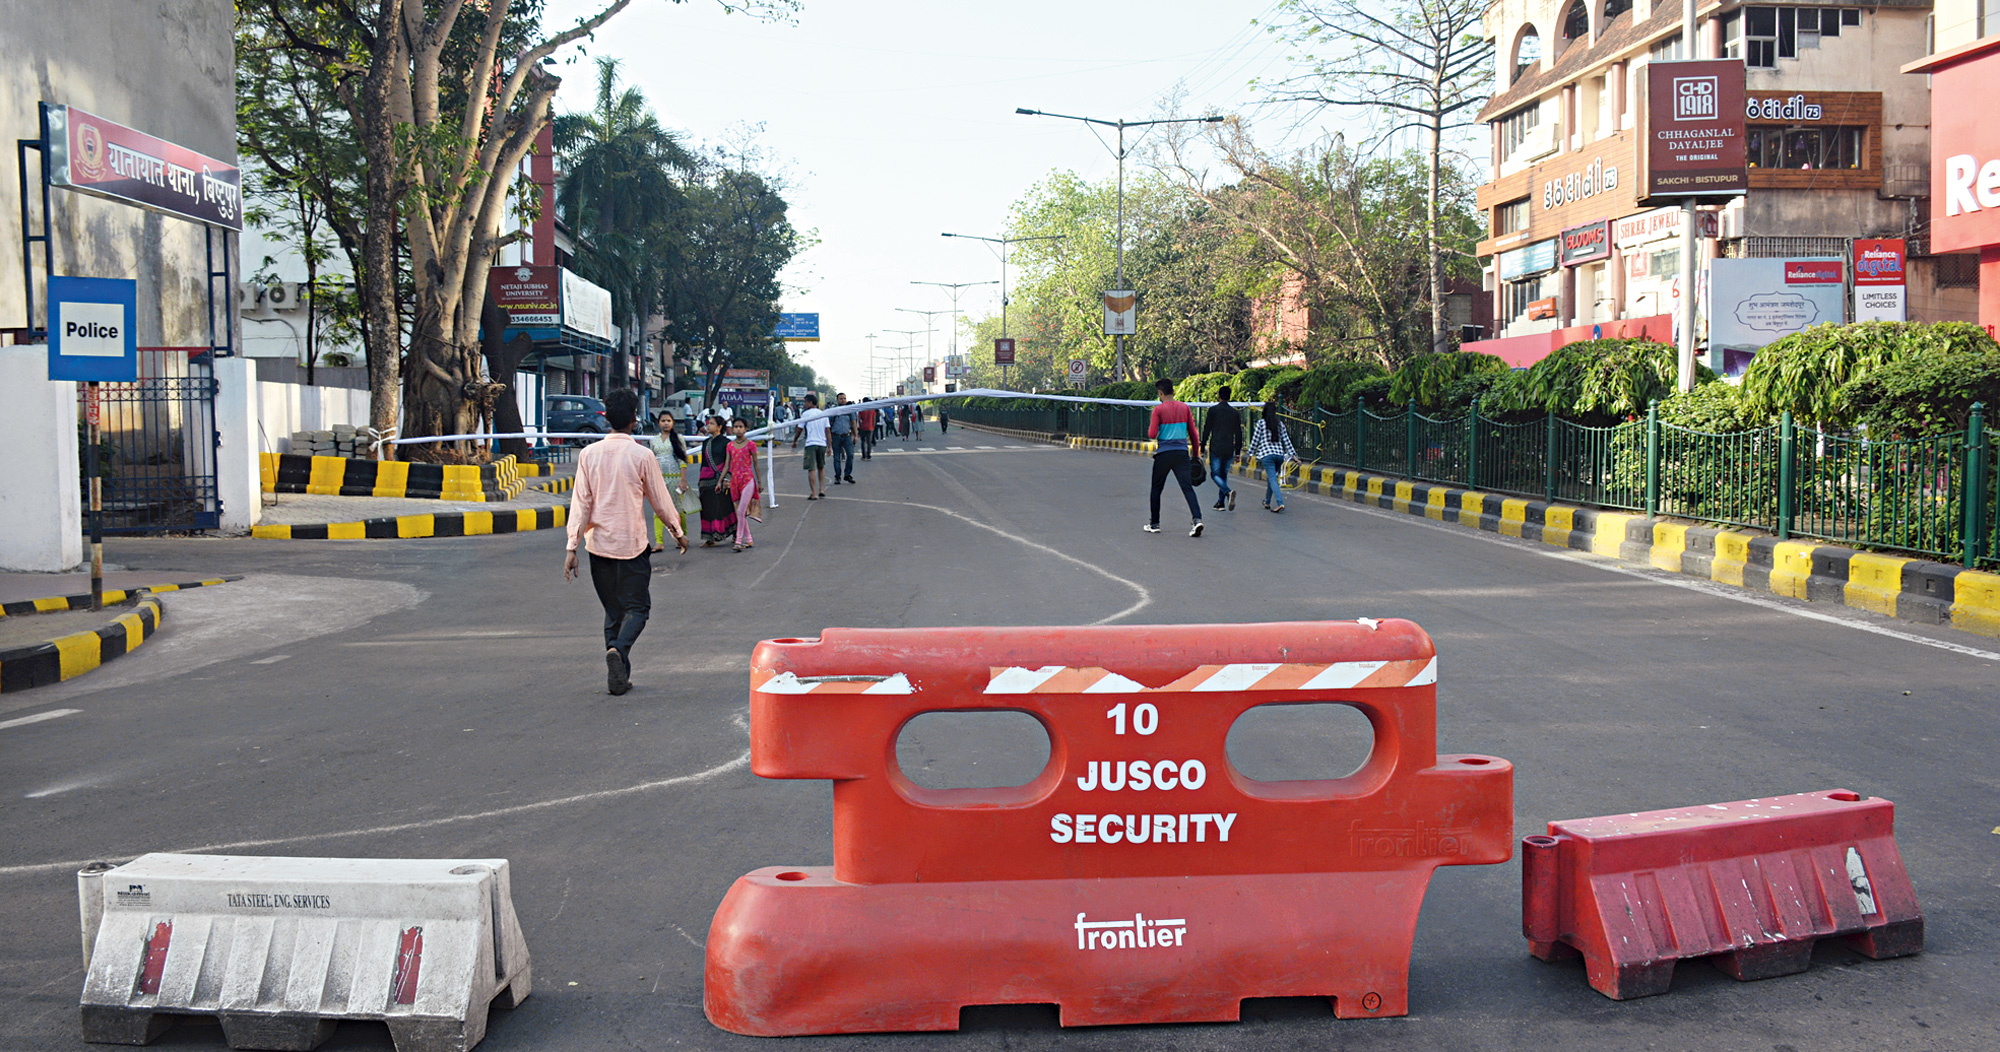 Low-key affair: The Bistupur stretch in Jamshedpur wears a deserted look during Jam@Streets on Sunday.